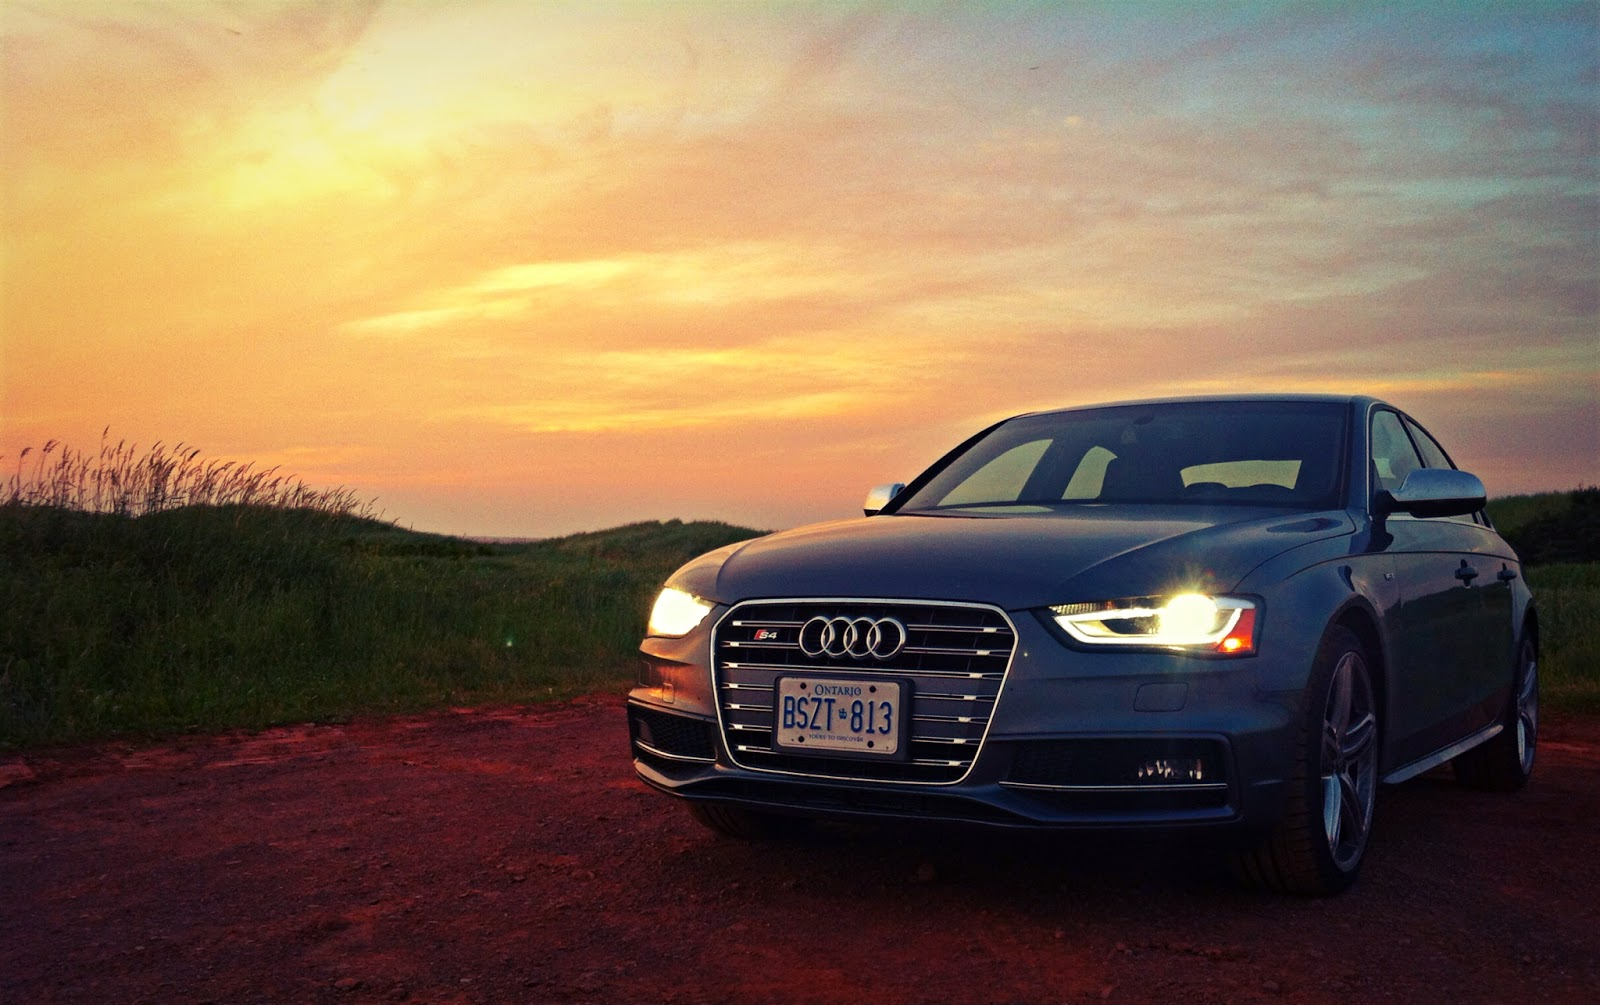 2014 Audi S4 Technik sunset PEI